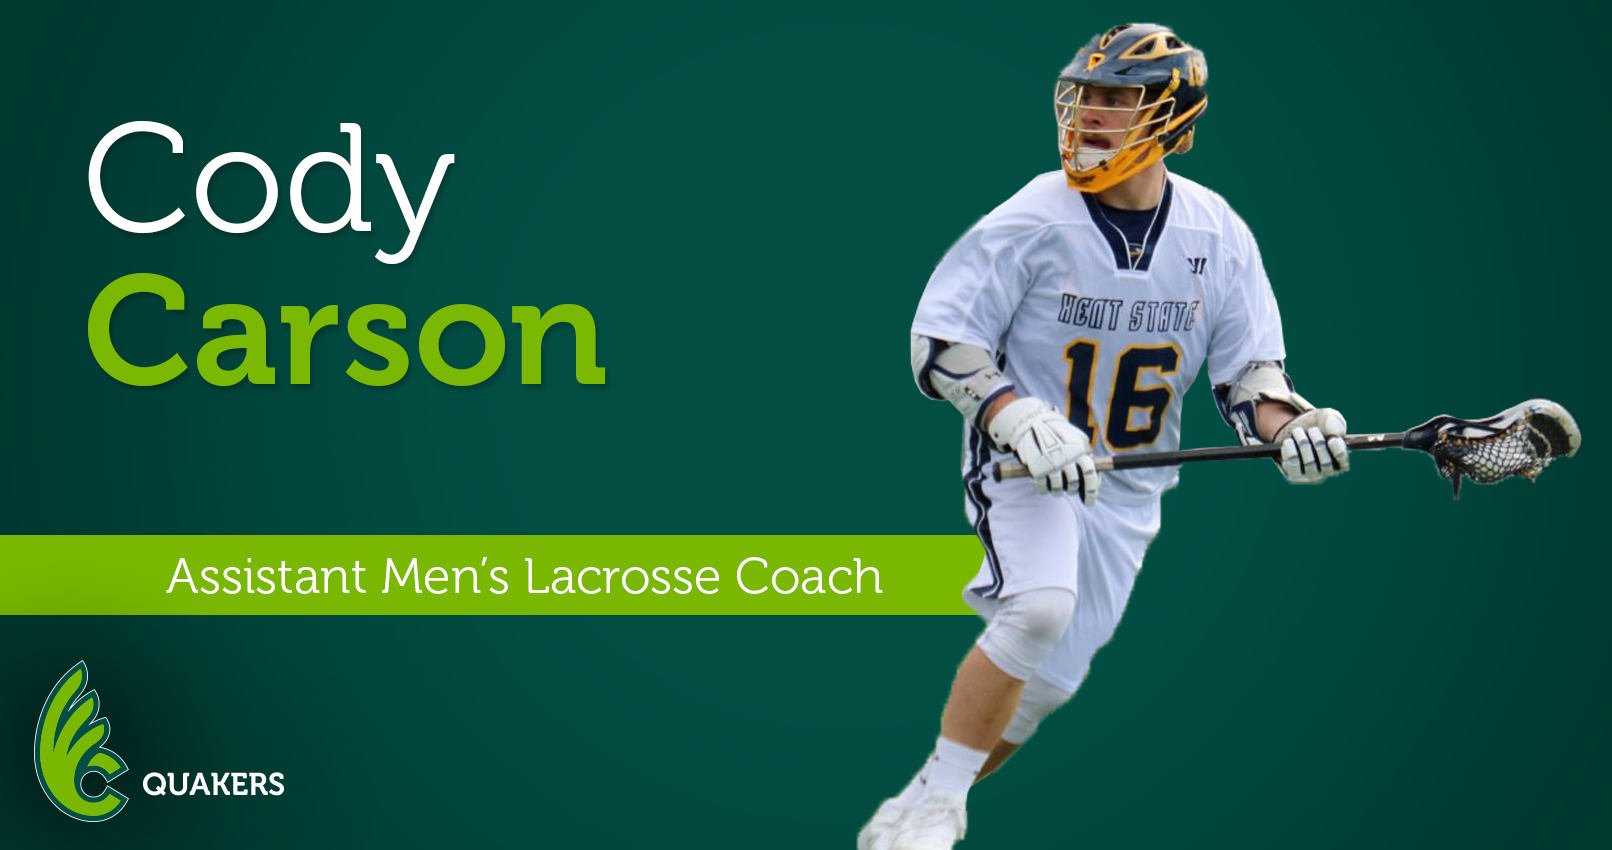 Cody Carson Joins Men's Lacrosse Program as Assistant Coach